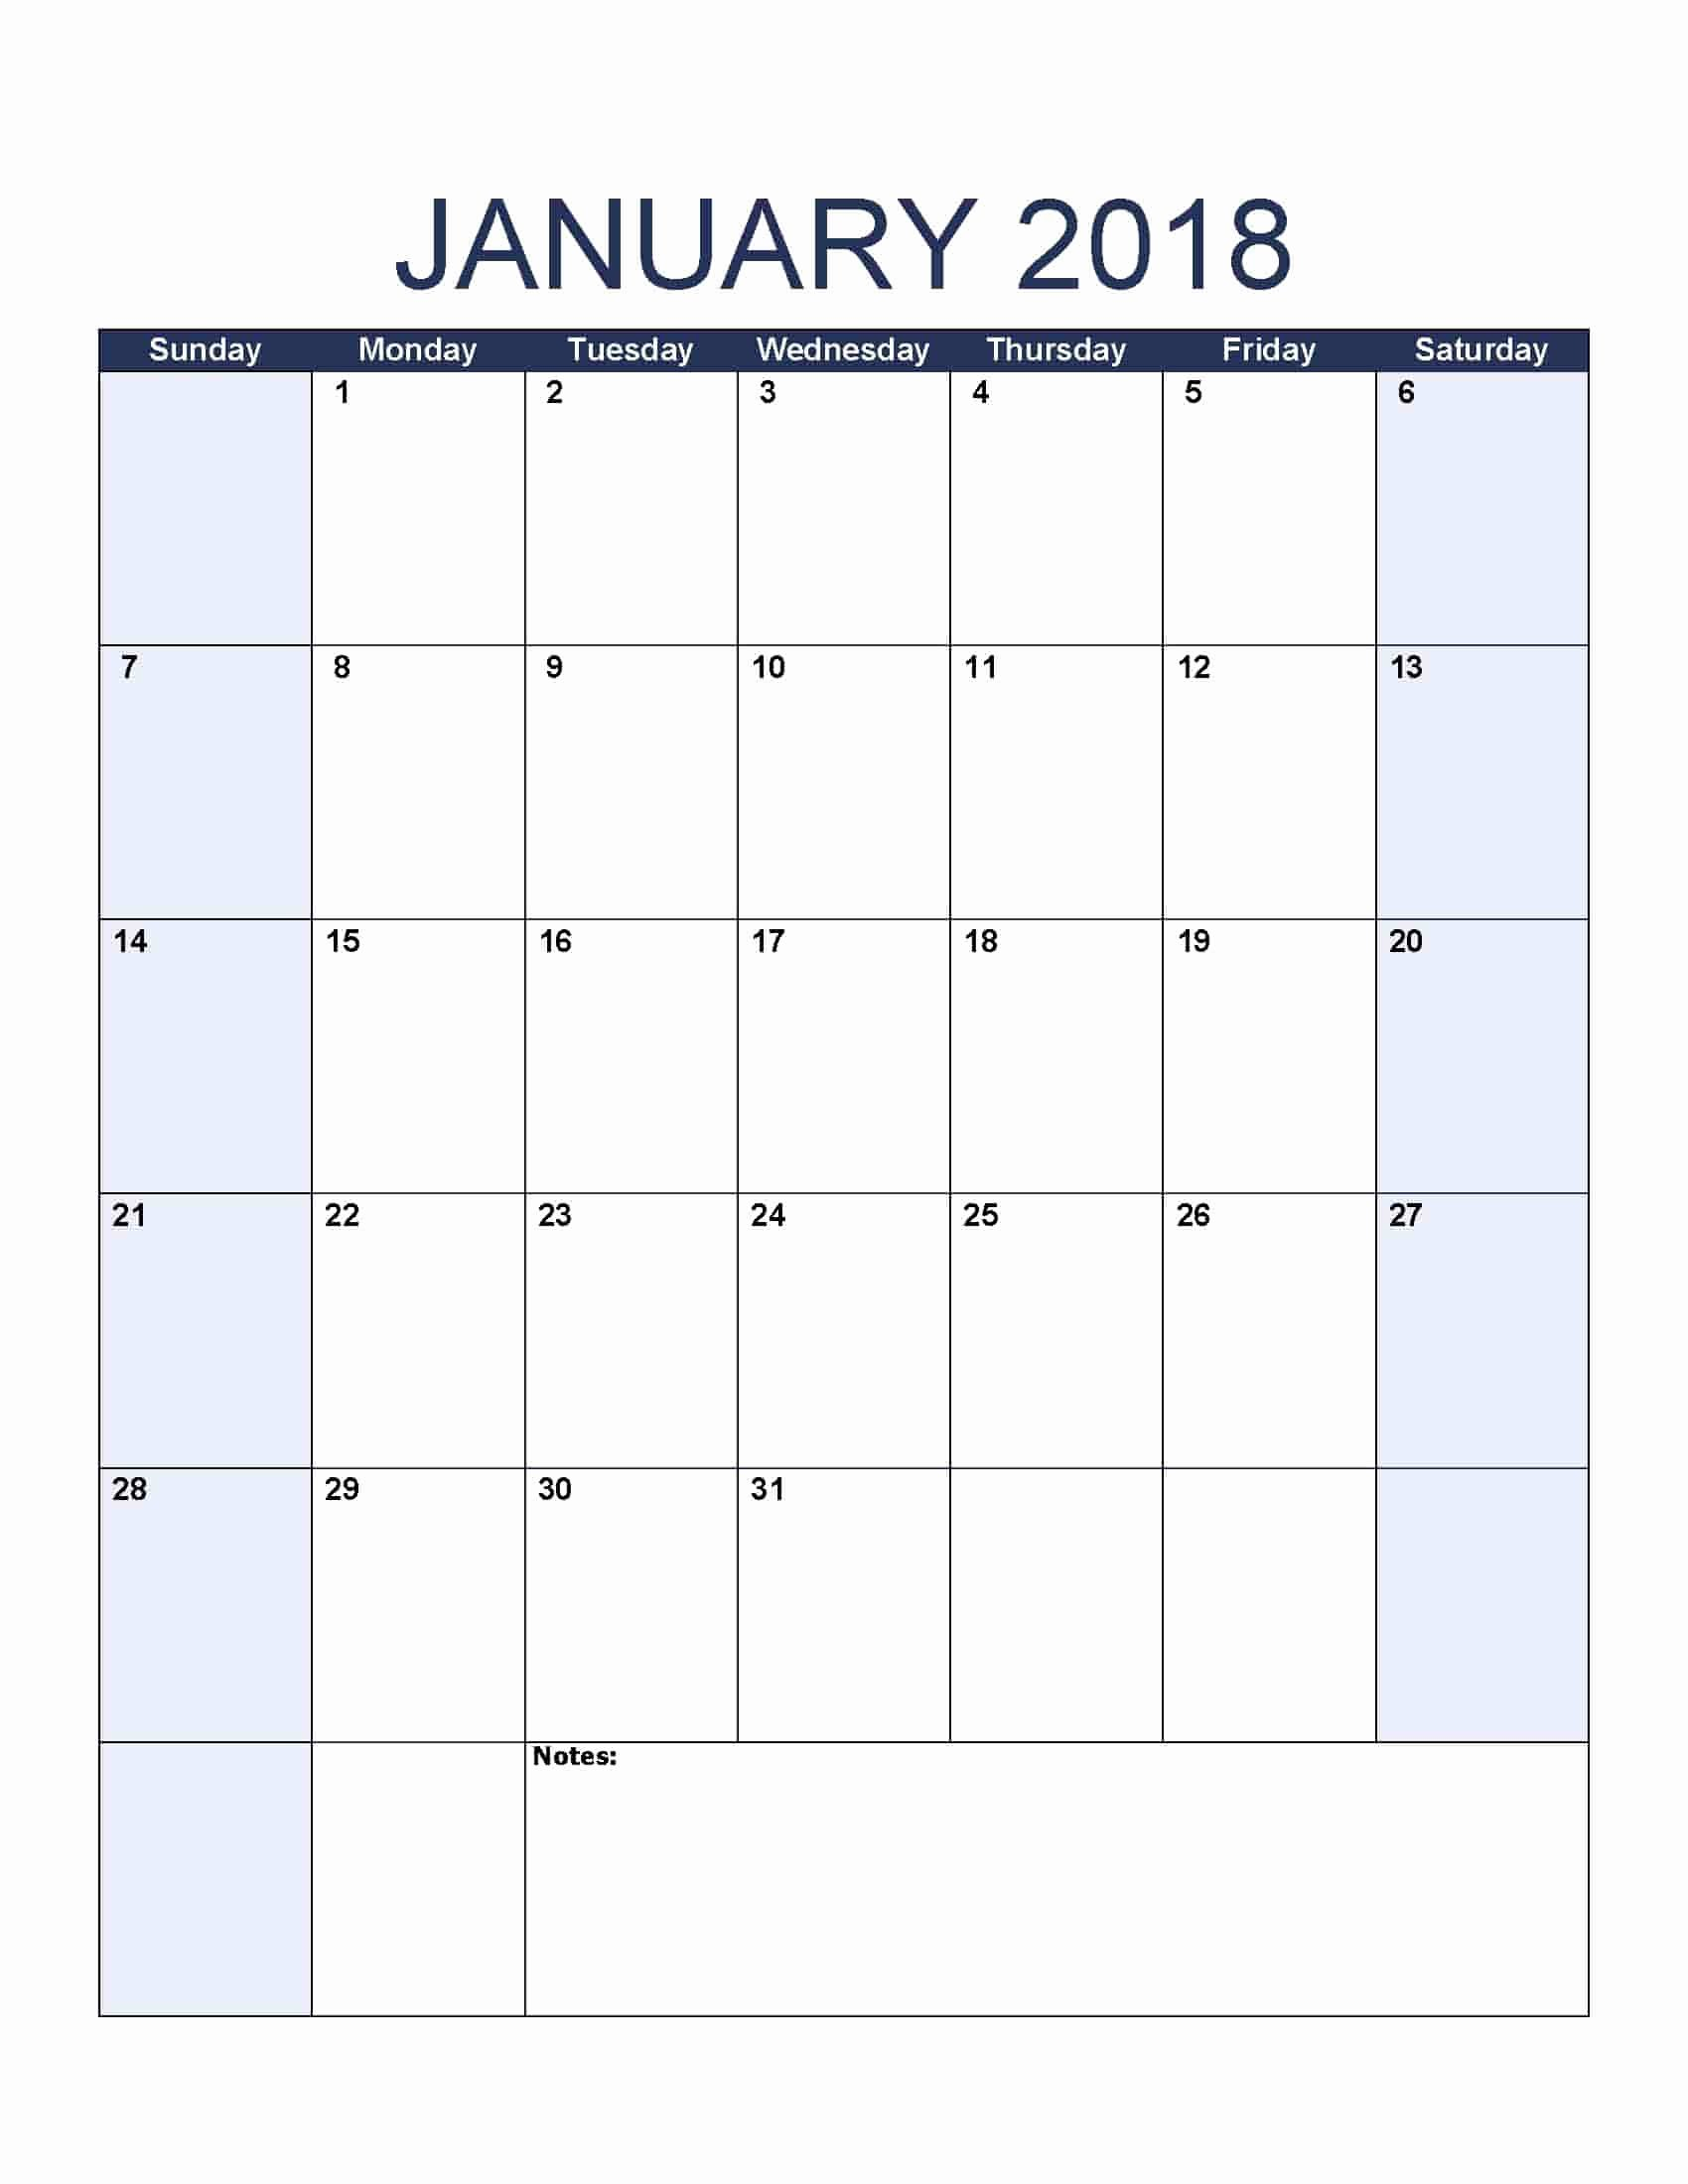 Printable Blank Weekly Calendar Unique January 2018 Calendar Free Printable Calendar Templates